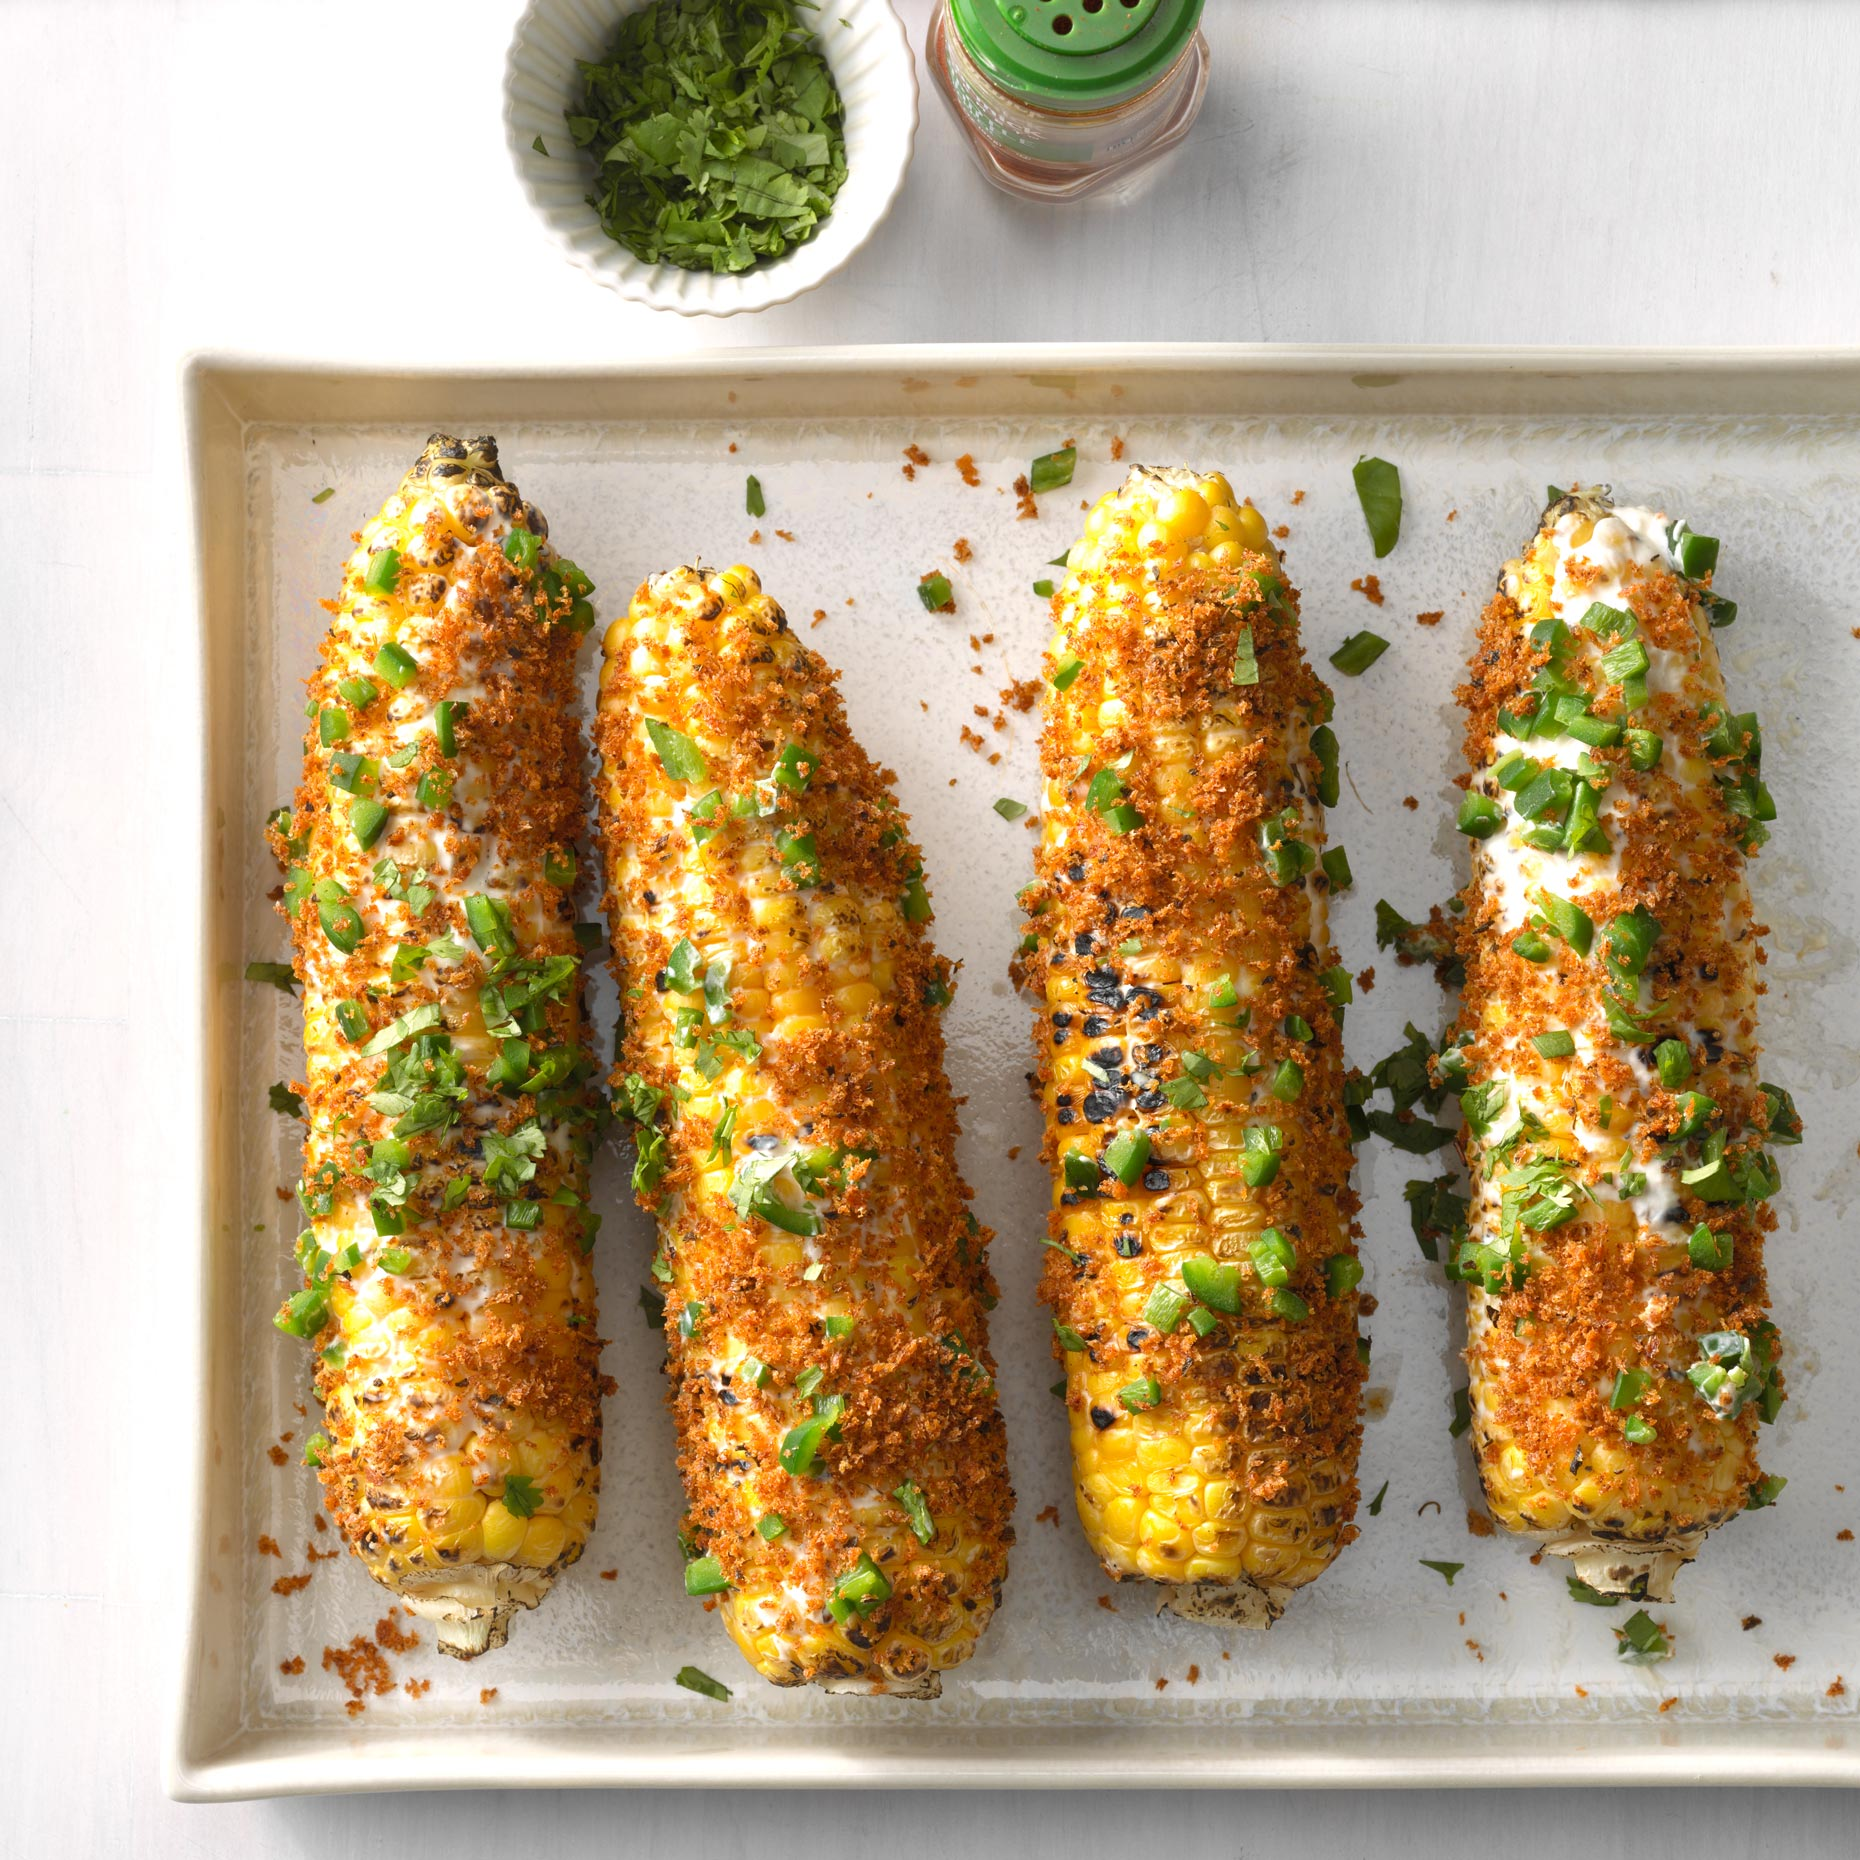 Jalapeno Popper Mexican Street Corn photo by Chris Kessler Photography.  Chris Kessler is a freelance Photographer based in Milwaukee Wisconsin. Specializing in Food photography and portraiturea